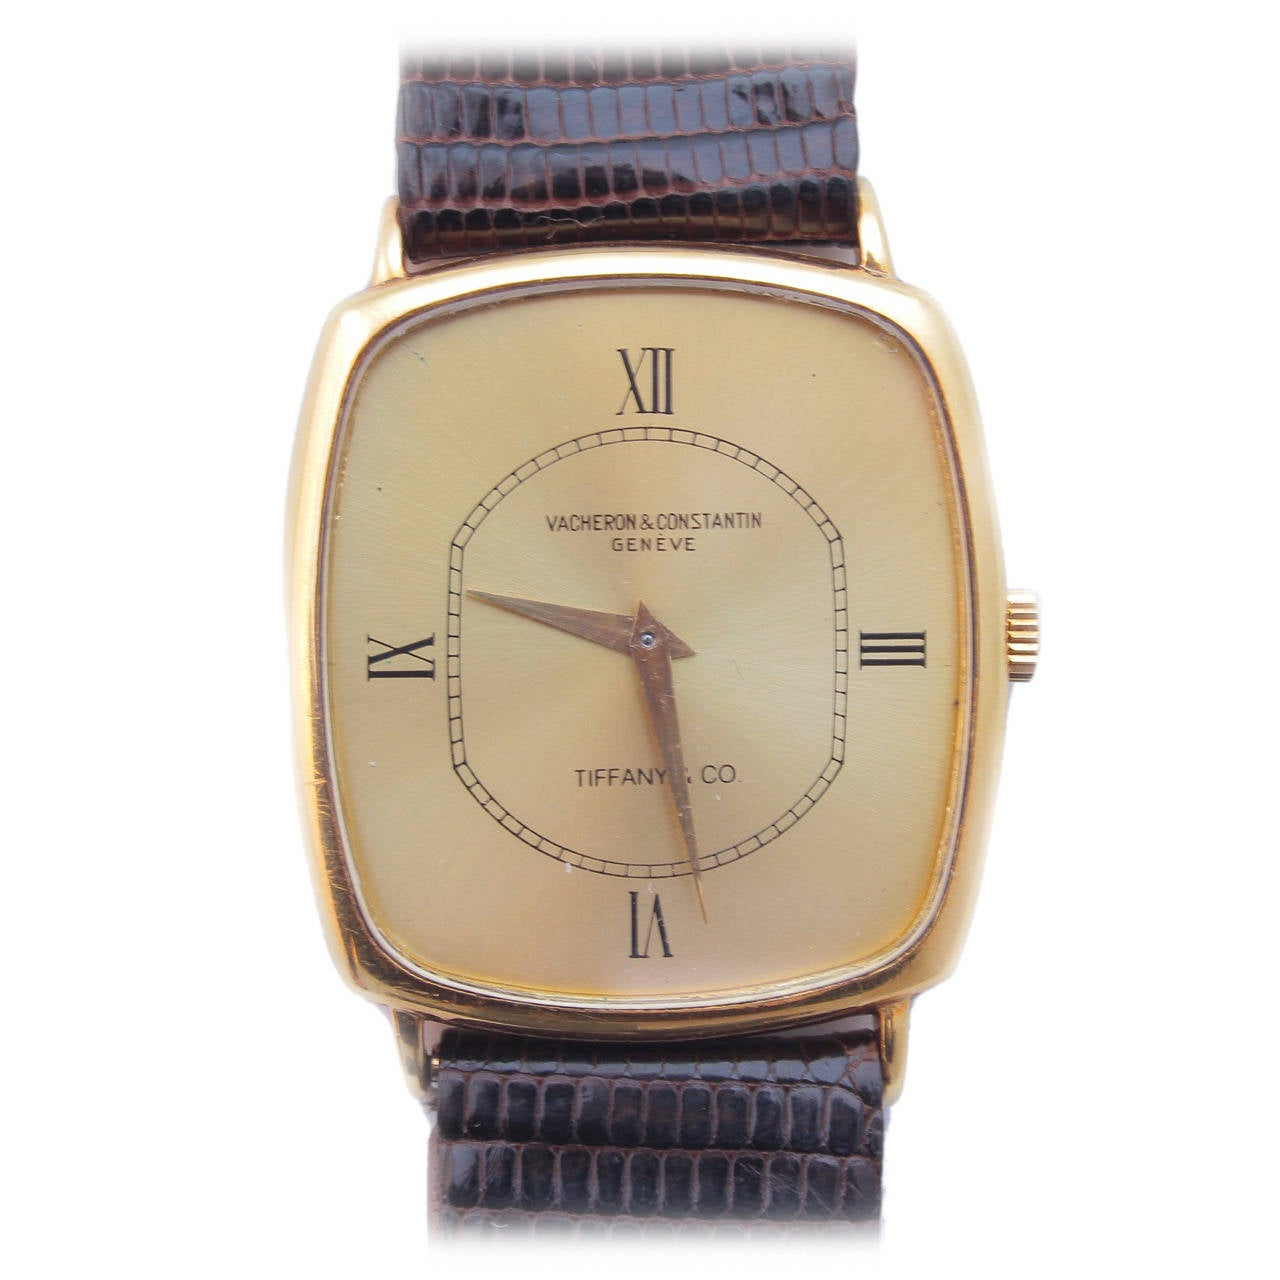 Vacheron & Constantin Yellow Gold Cusion Wristwatch Retailed by Tiffany & Co